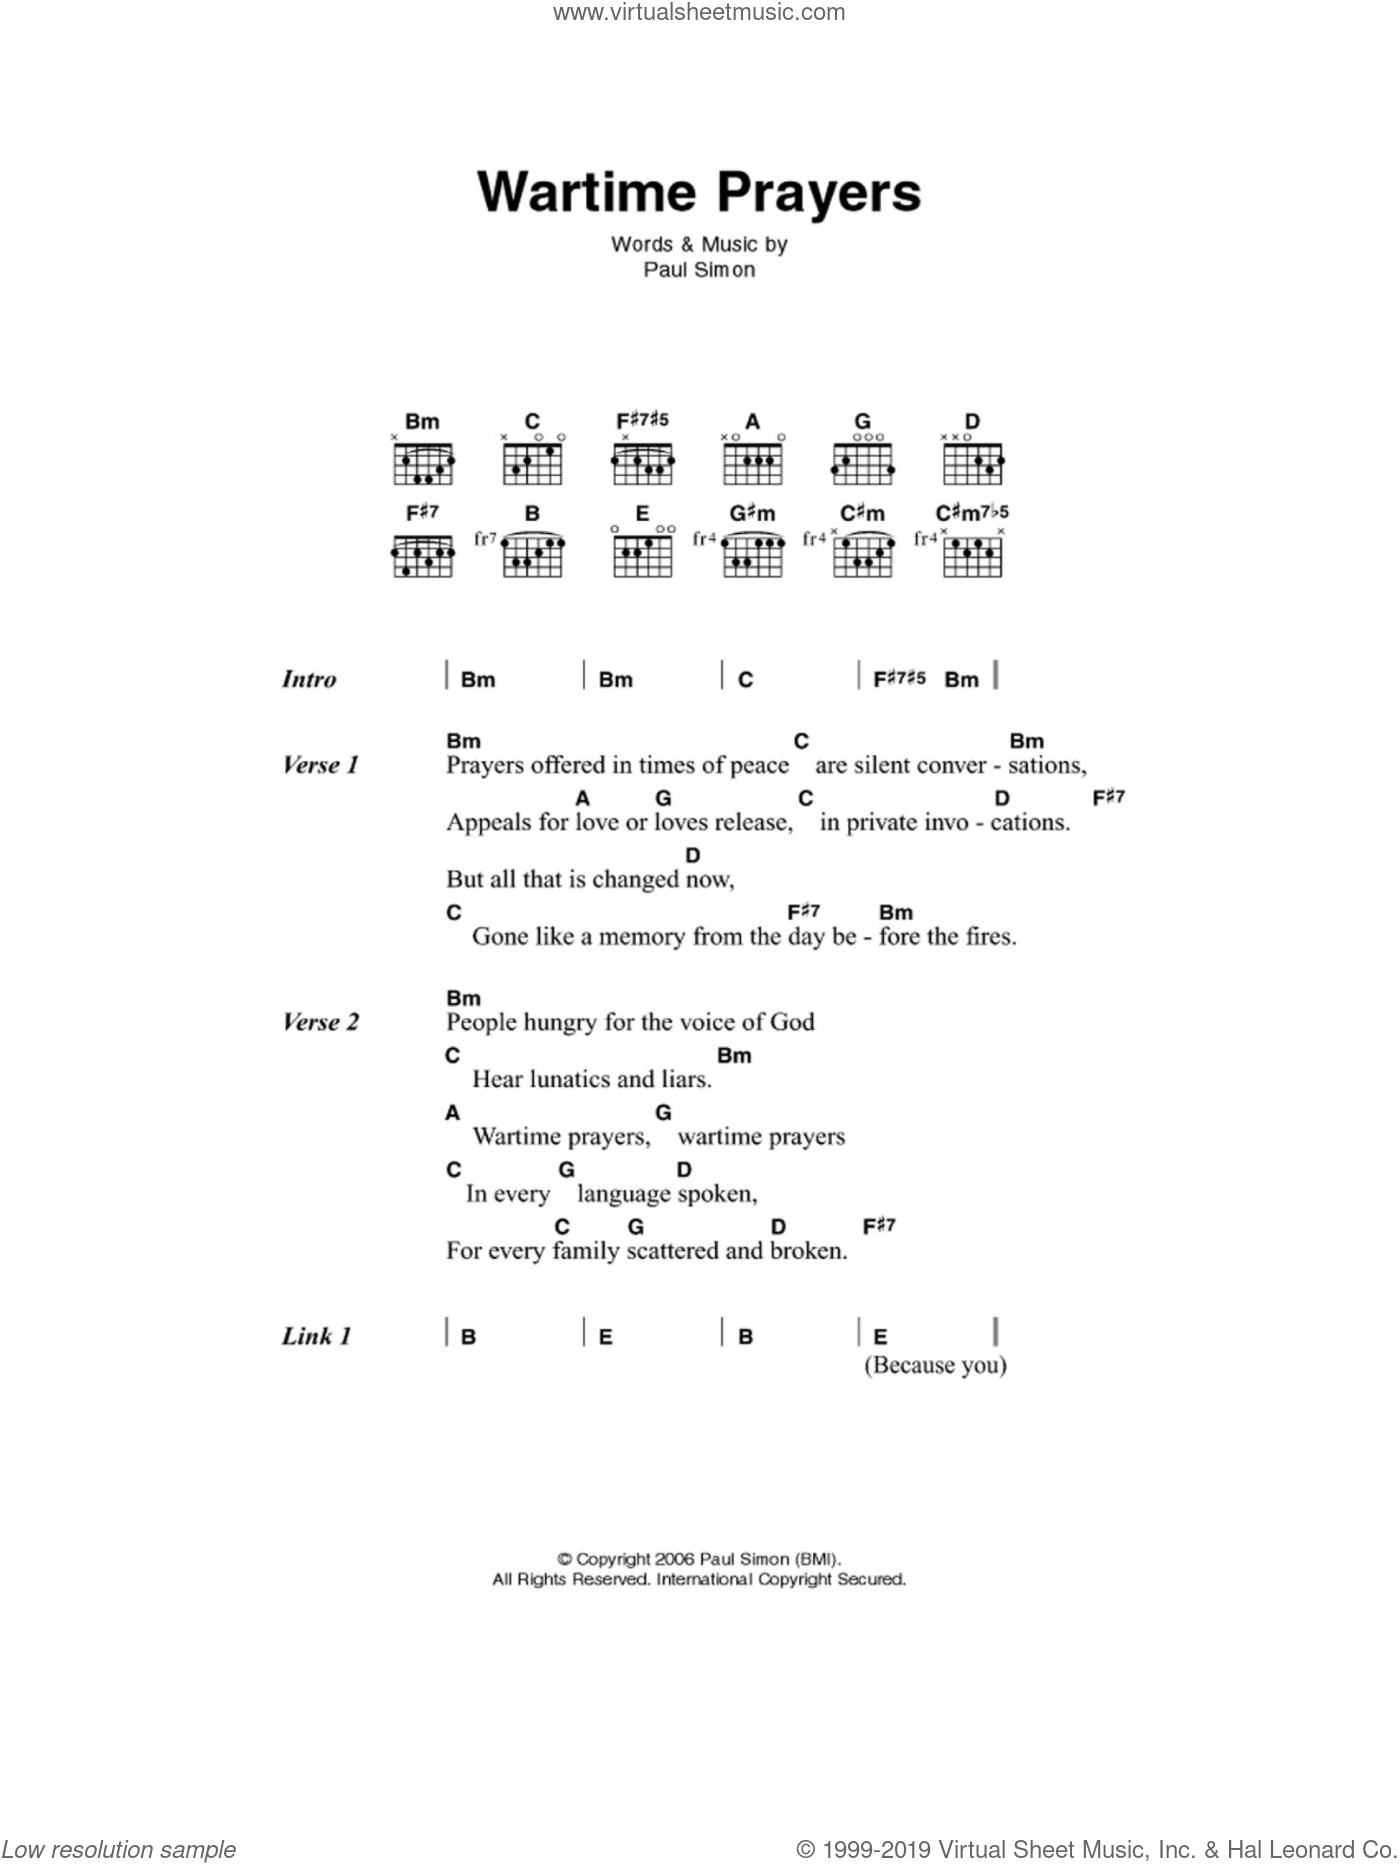 Wartime Prayers sheet music for guitar (chords) by Paul Simon